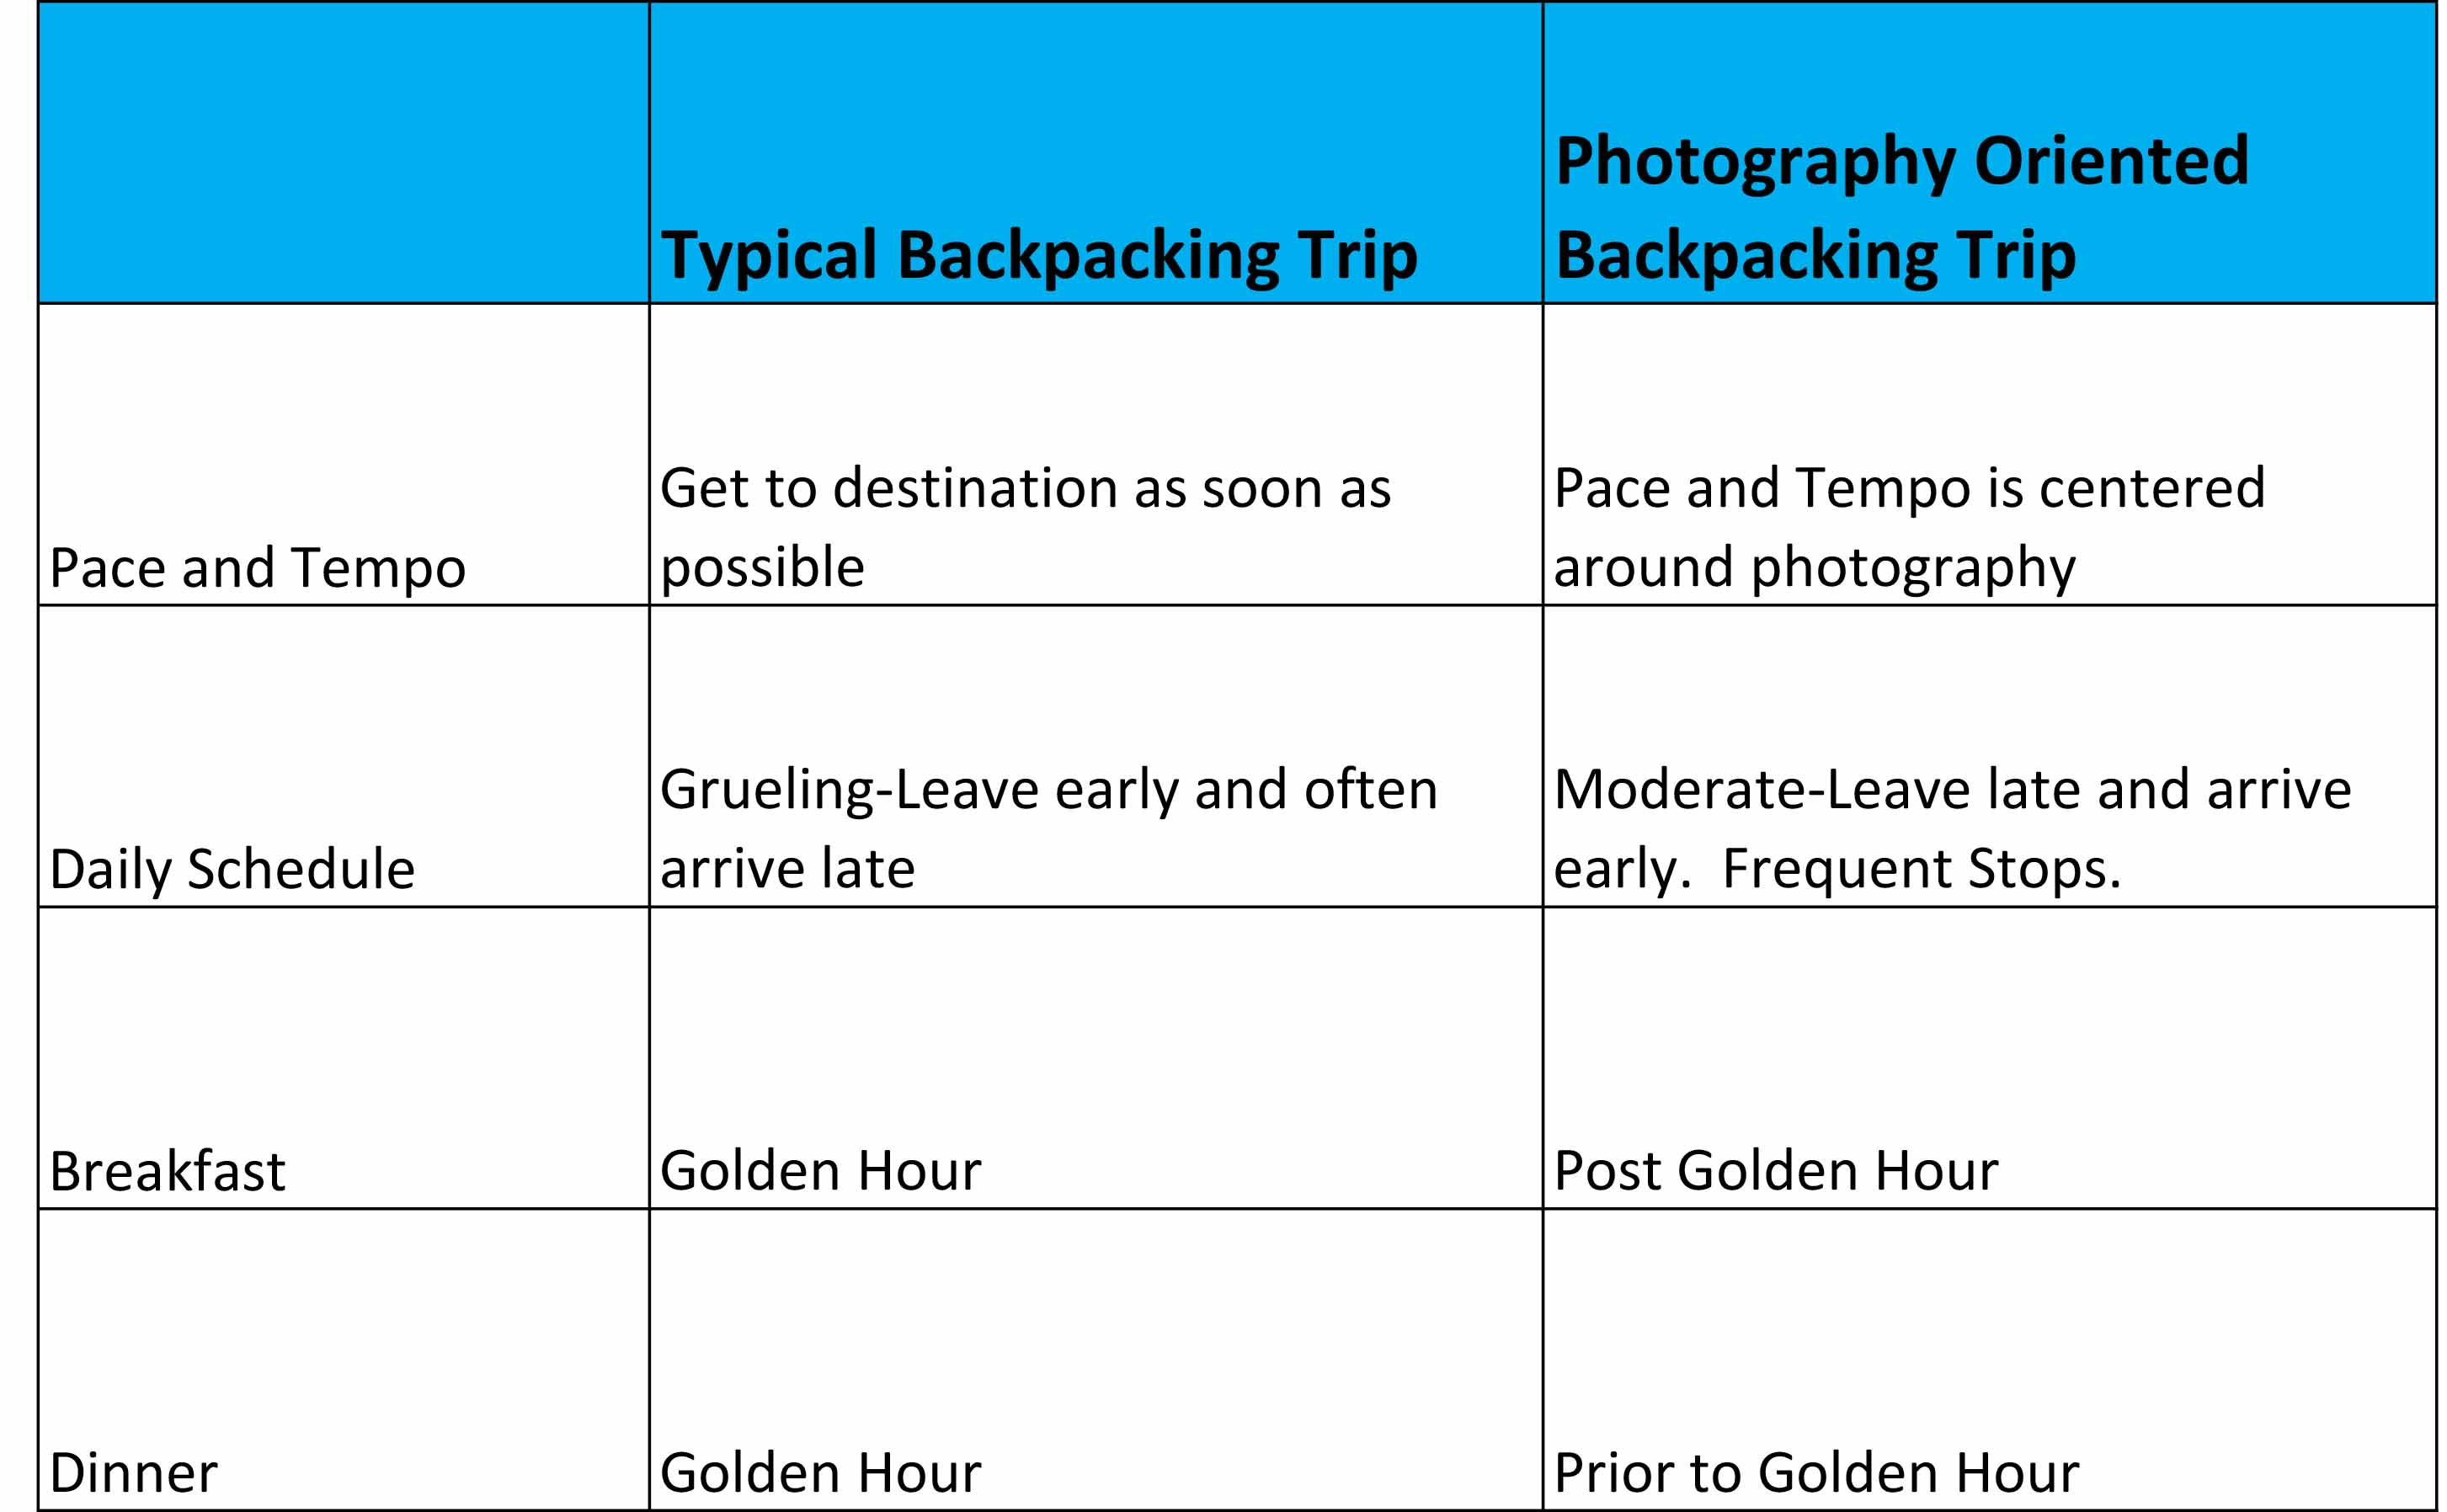 Typical and Photography Multiday Backpacking